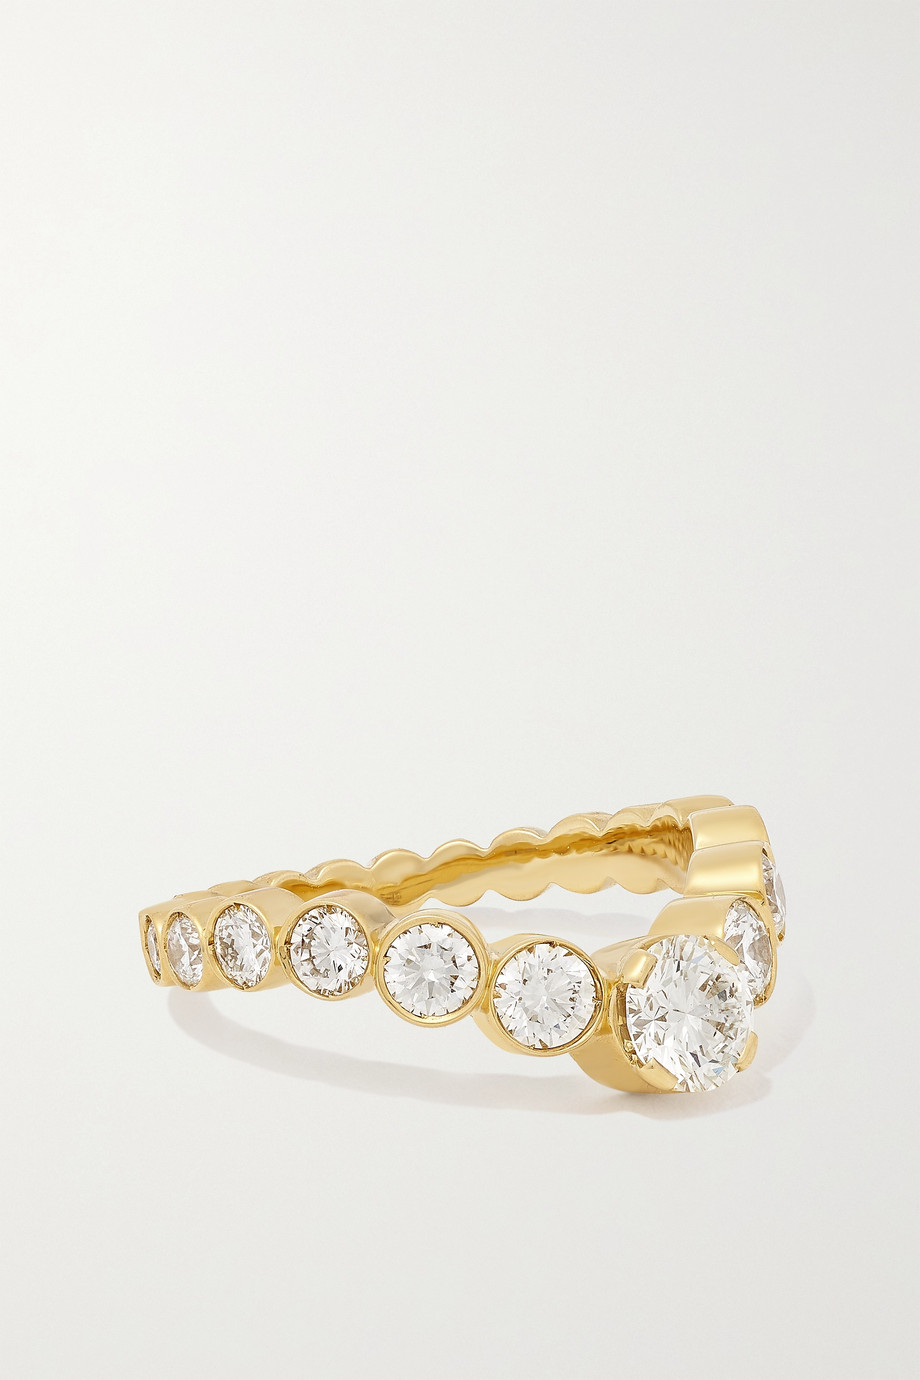 Sophie Bille Brahe Grace Ensemble Royale 18-karat gold diamond ring